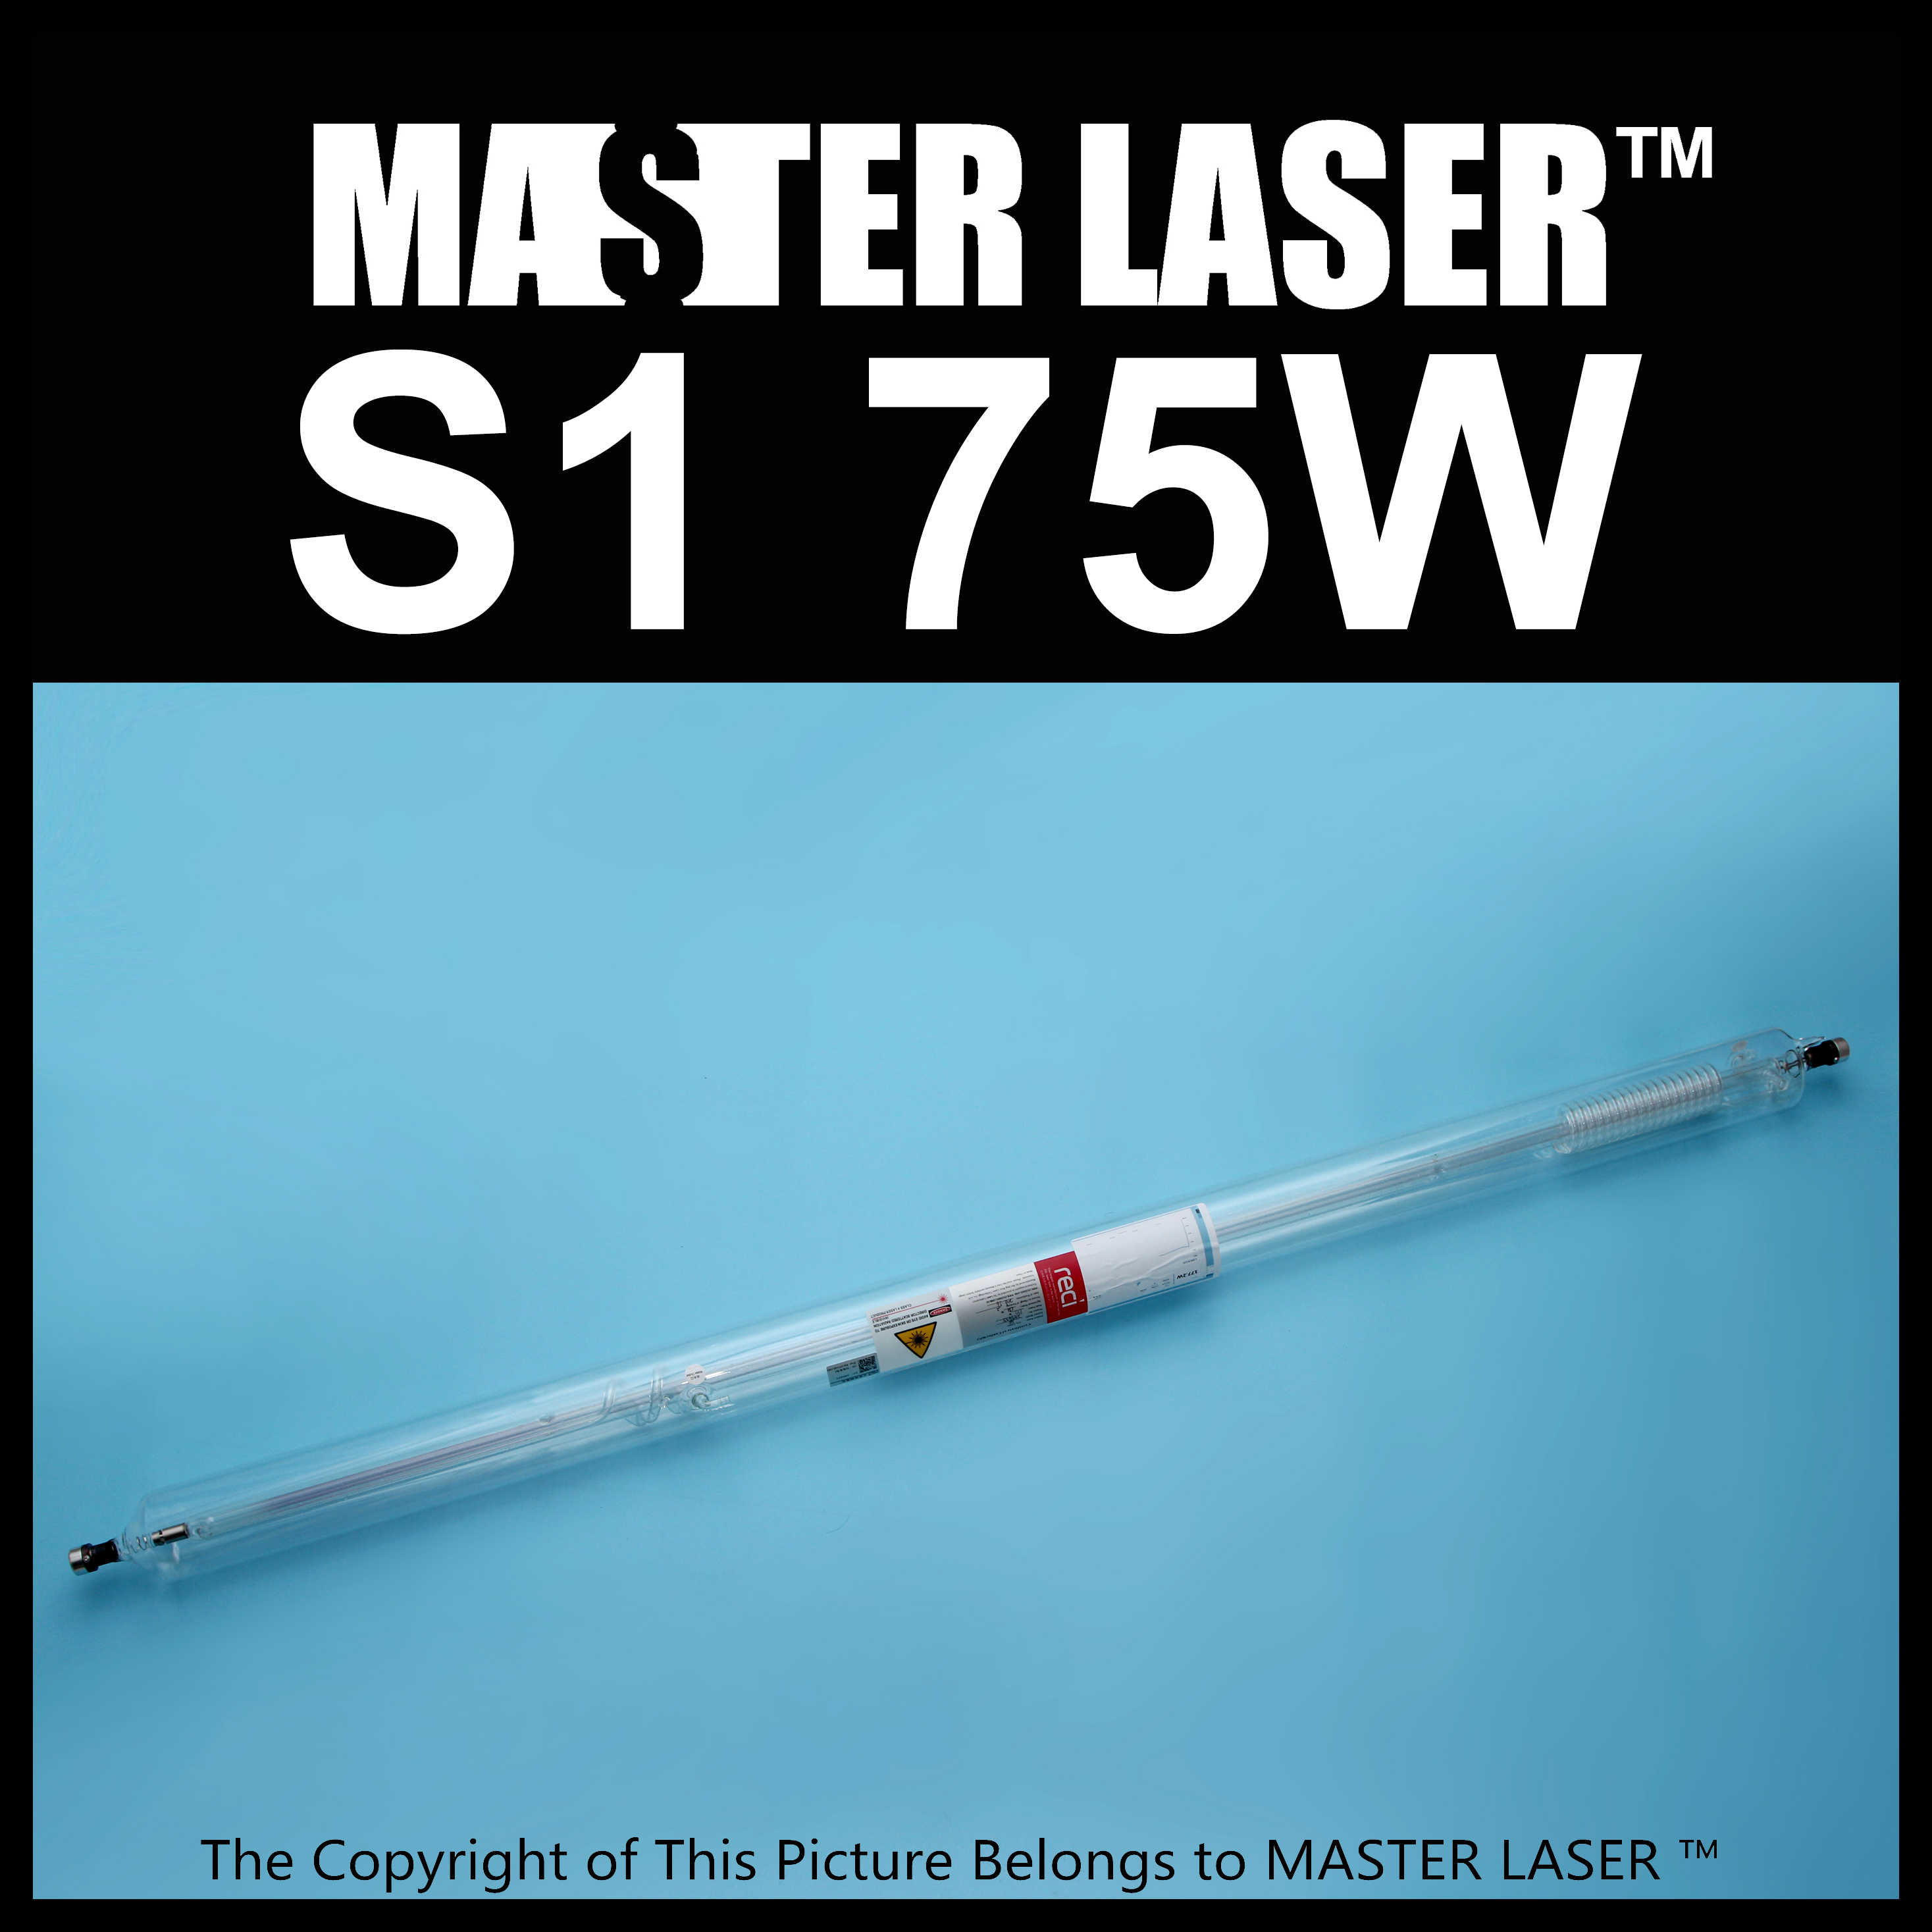 Reci Laser Tube S1 75W Peak Power 90W for CNC Laser Cutting Machine free shipping reci w2 90w co2 laser tube wooden box packing tube length 1200mm diameter 80mm